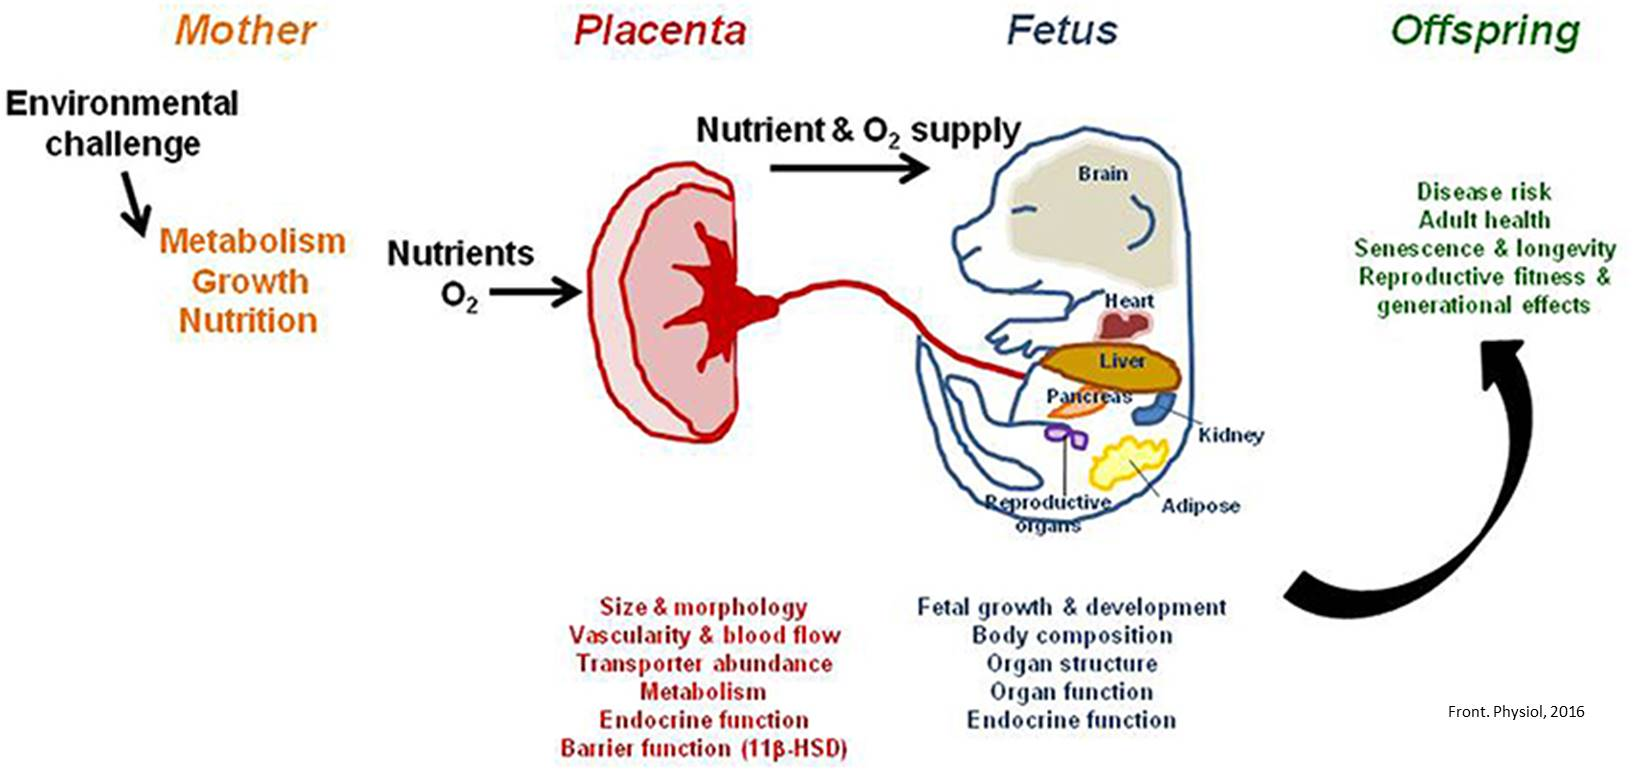 Placentas adapt when mothers have poor diets or low oxygen during pregnancy